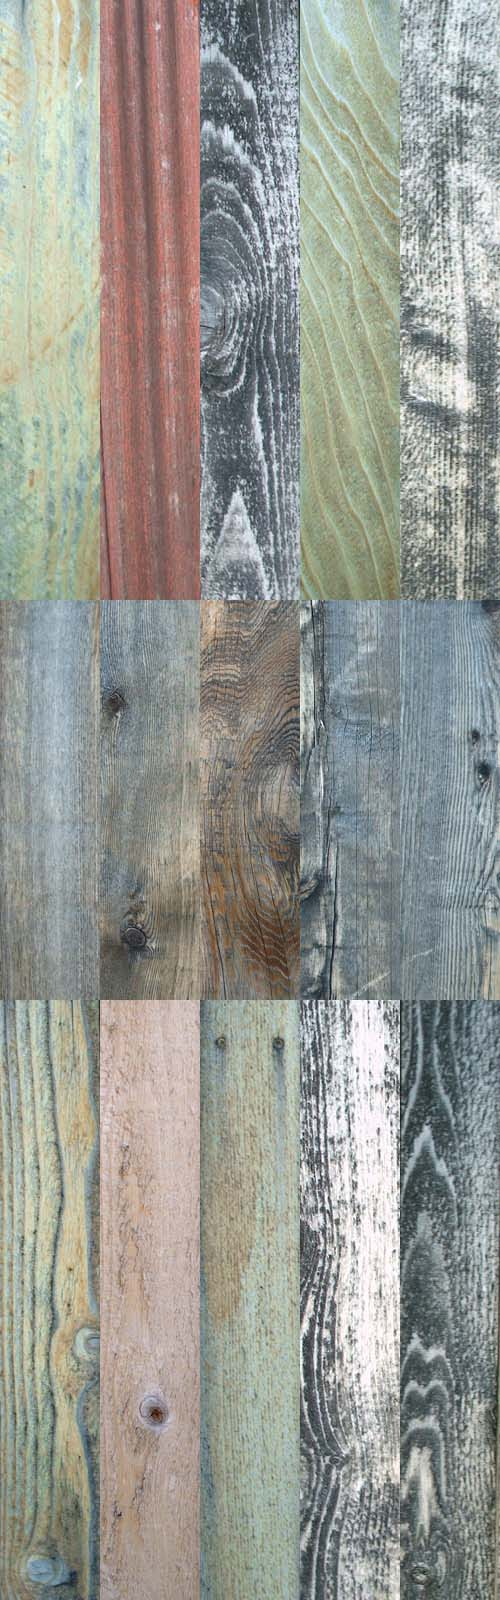 A set of wooden texture # 16